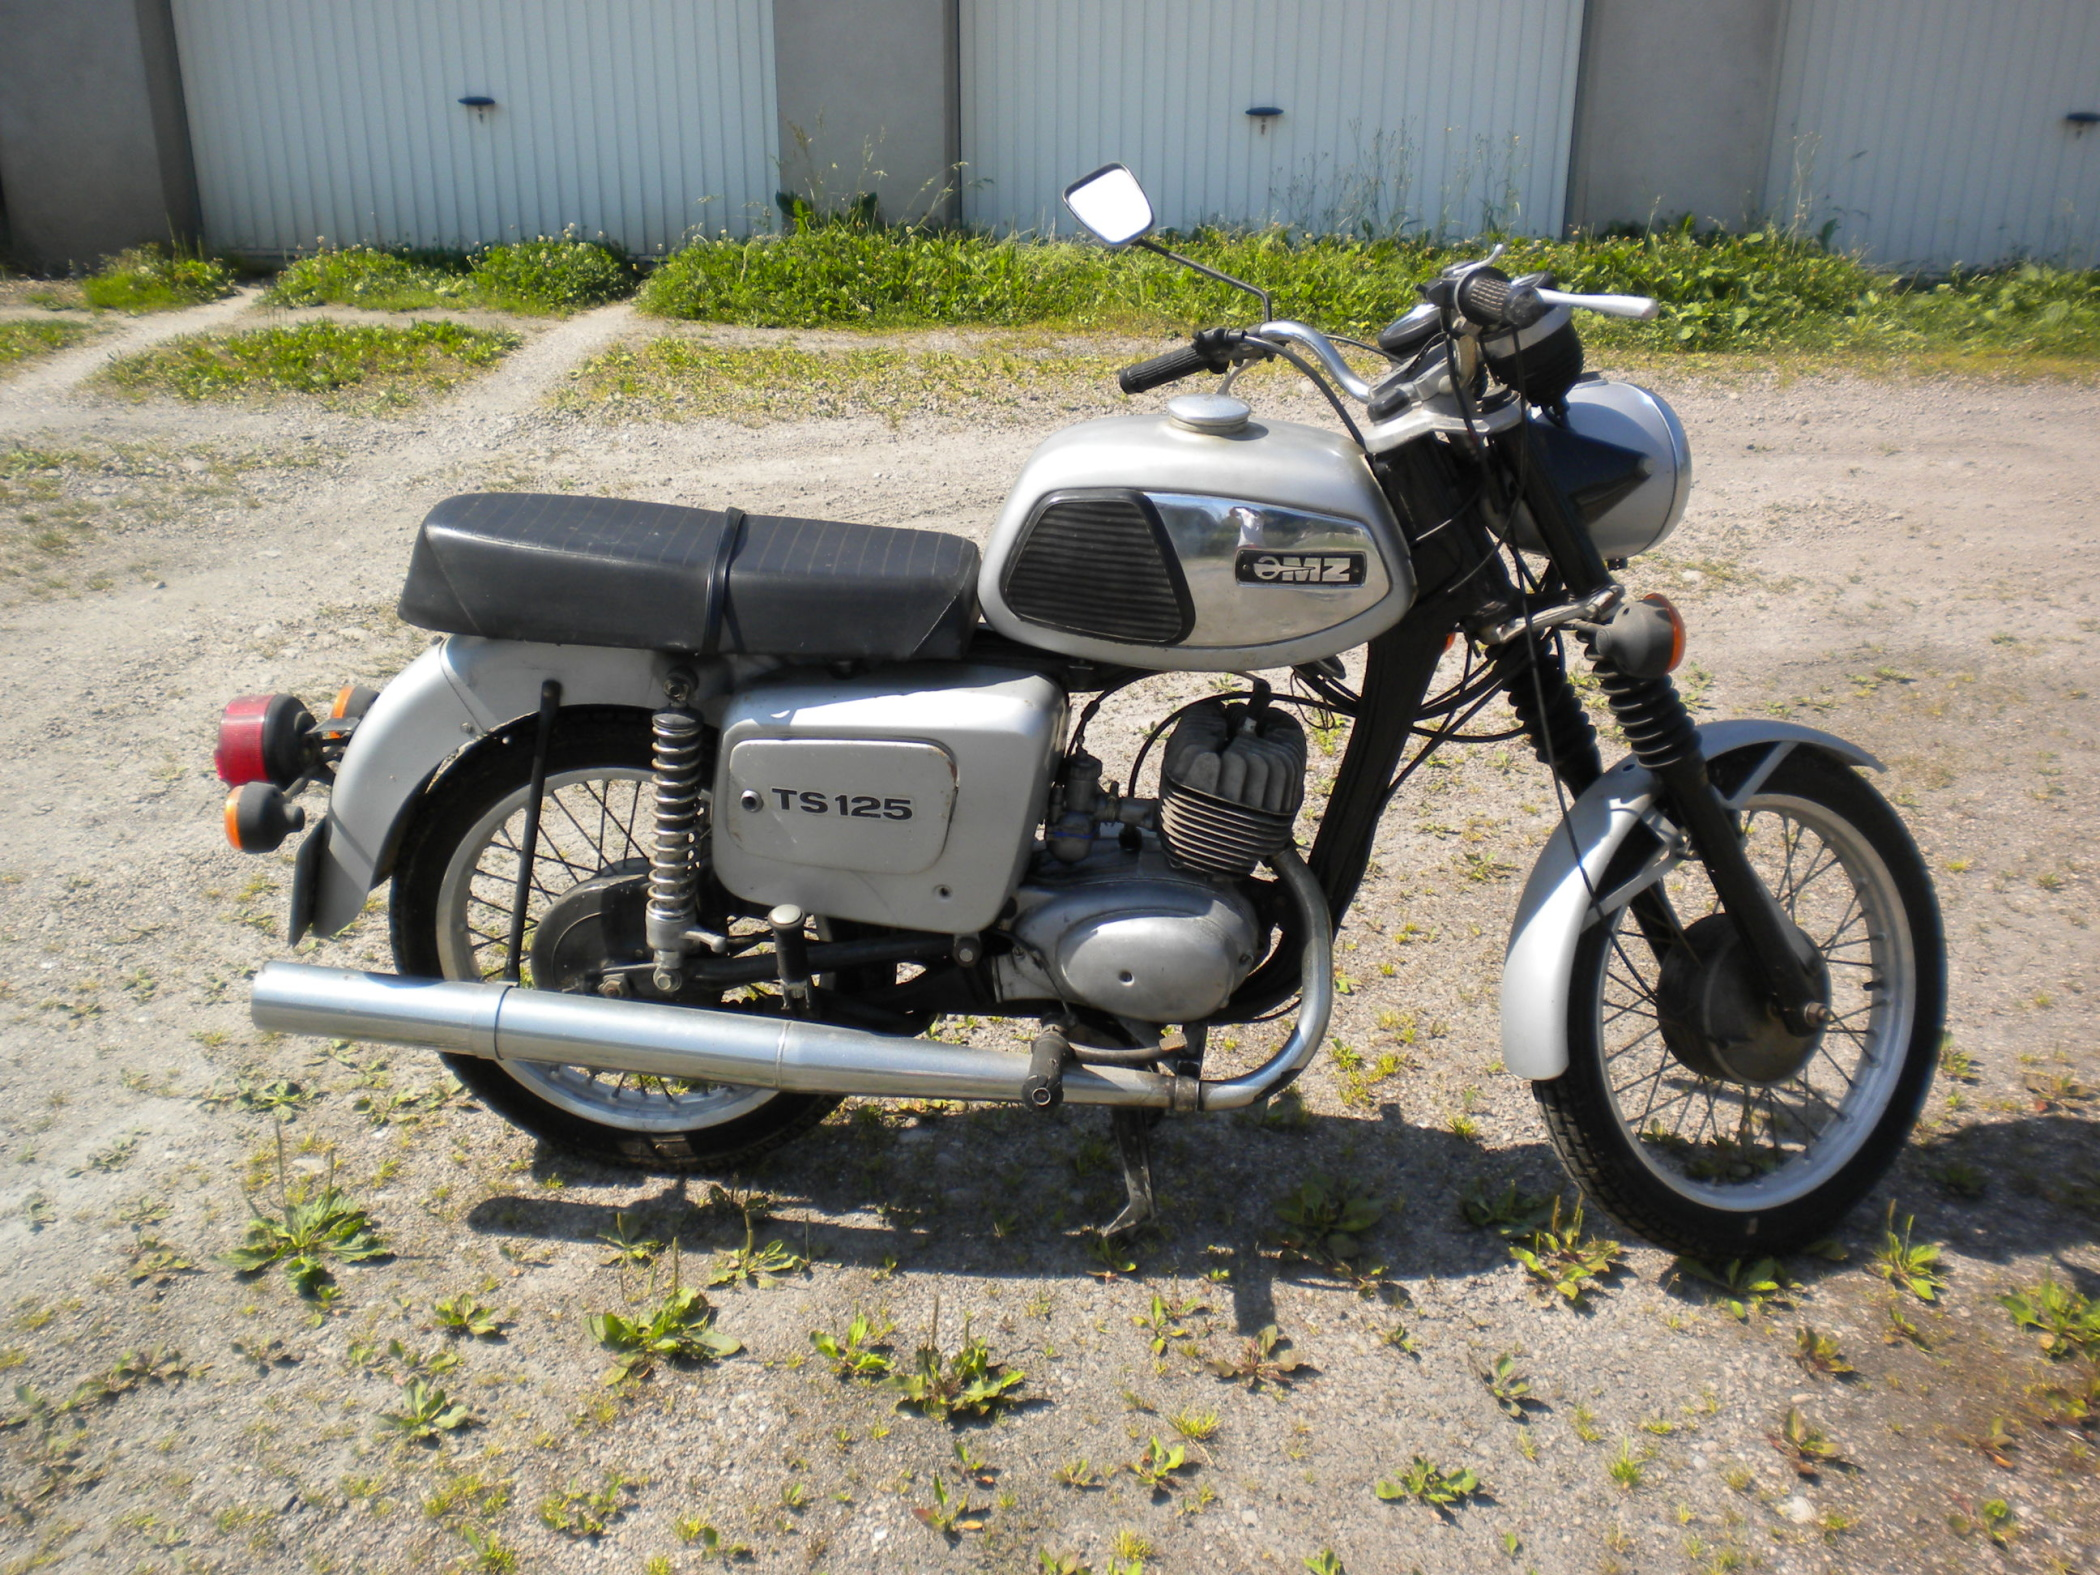 1984 Mz Ts 125 Pics Specs And Information